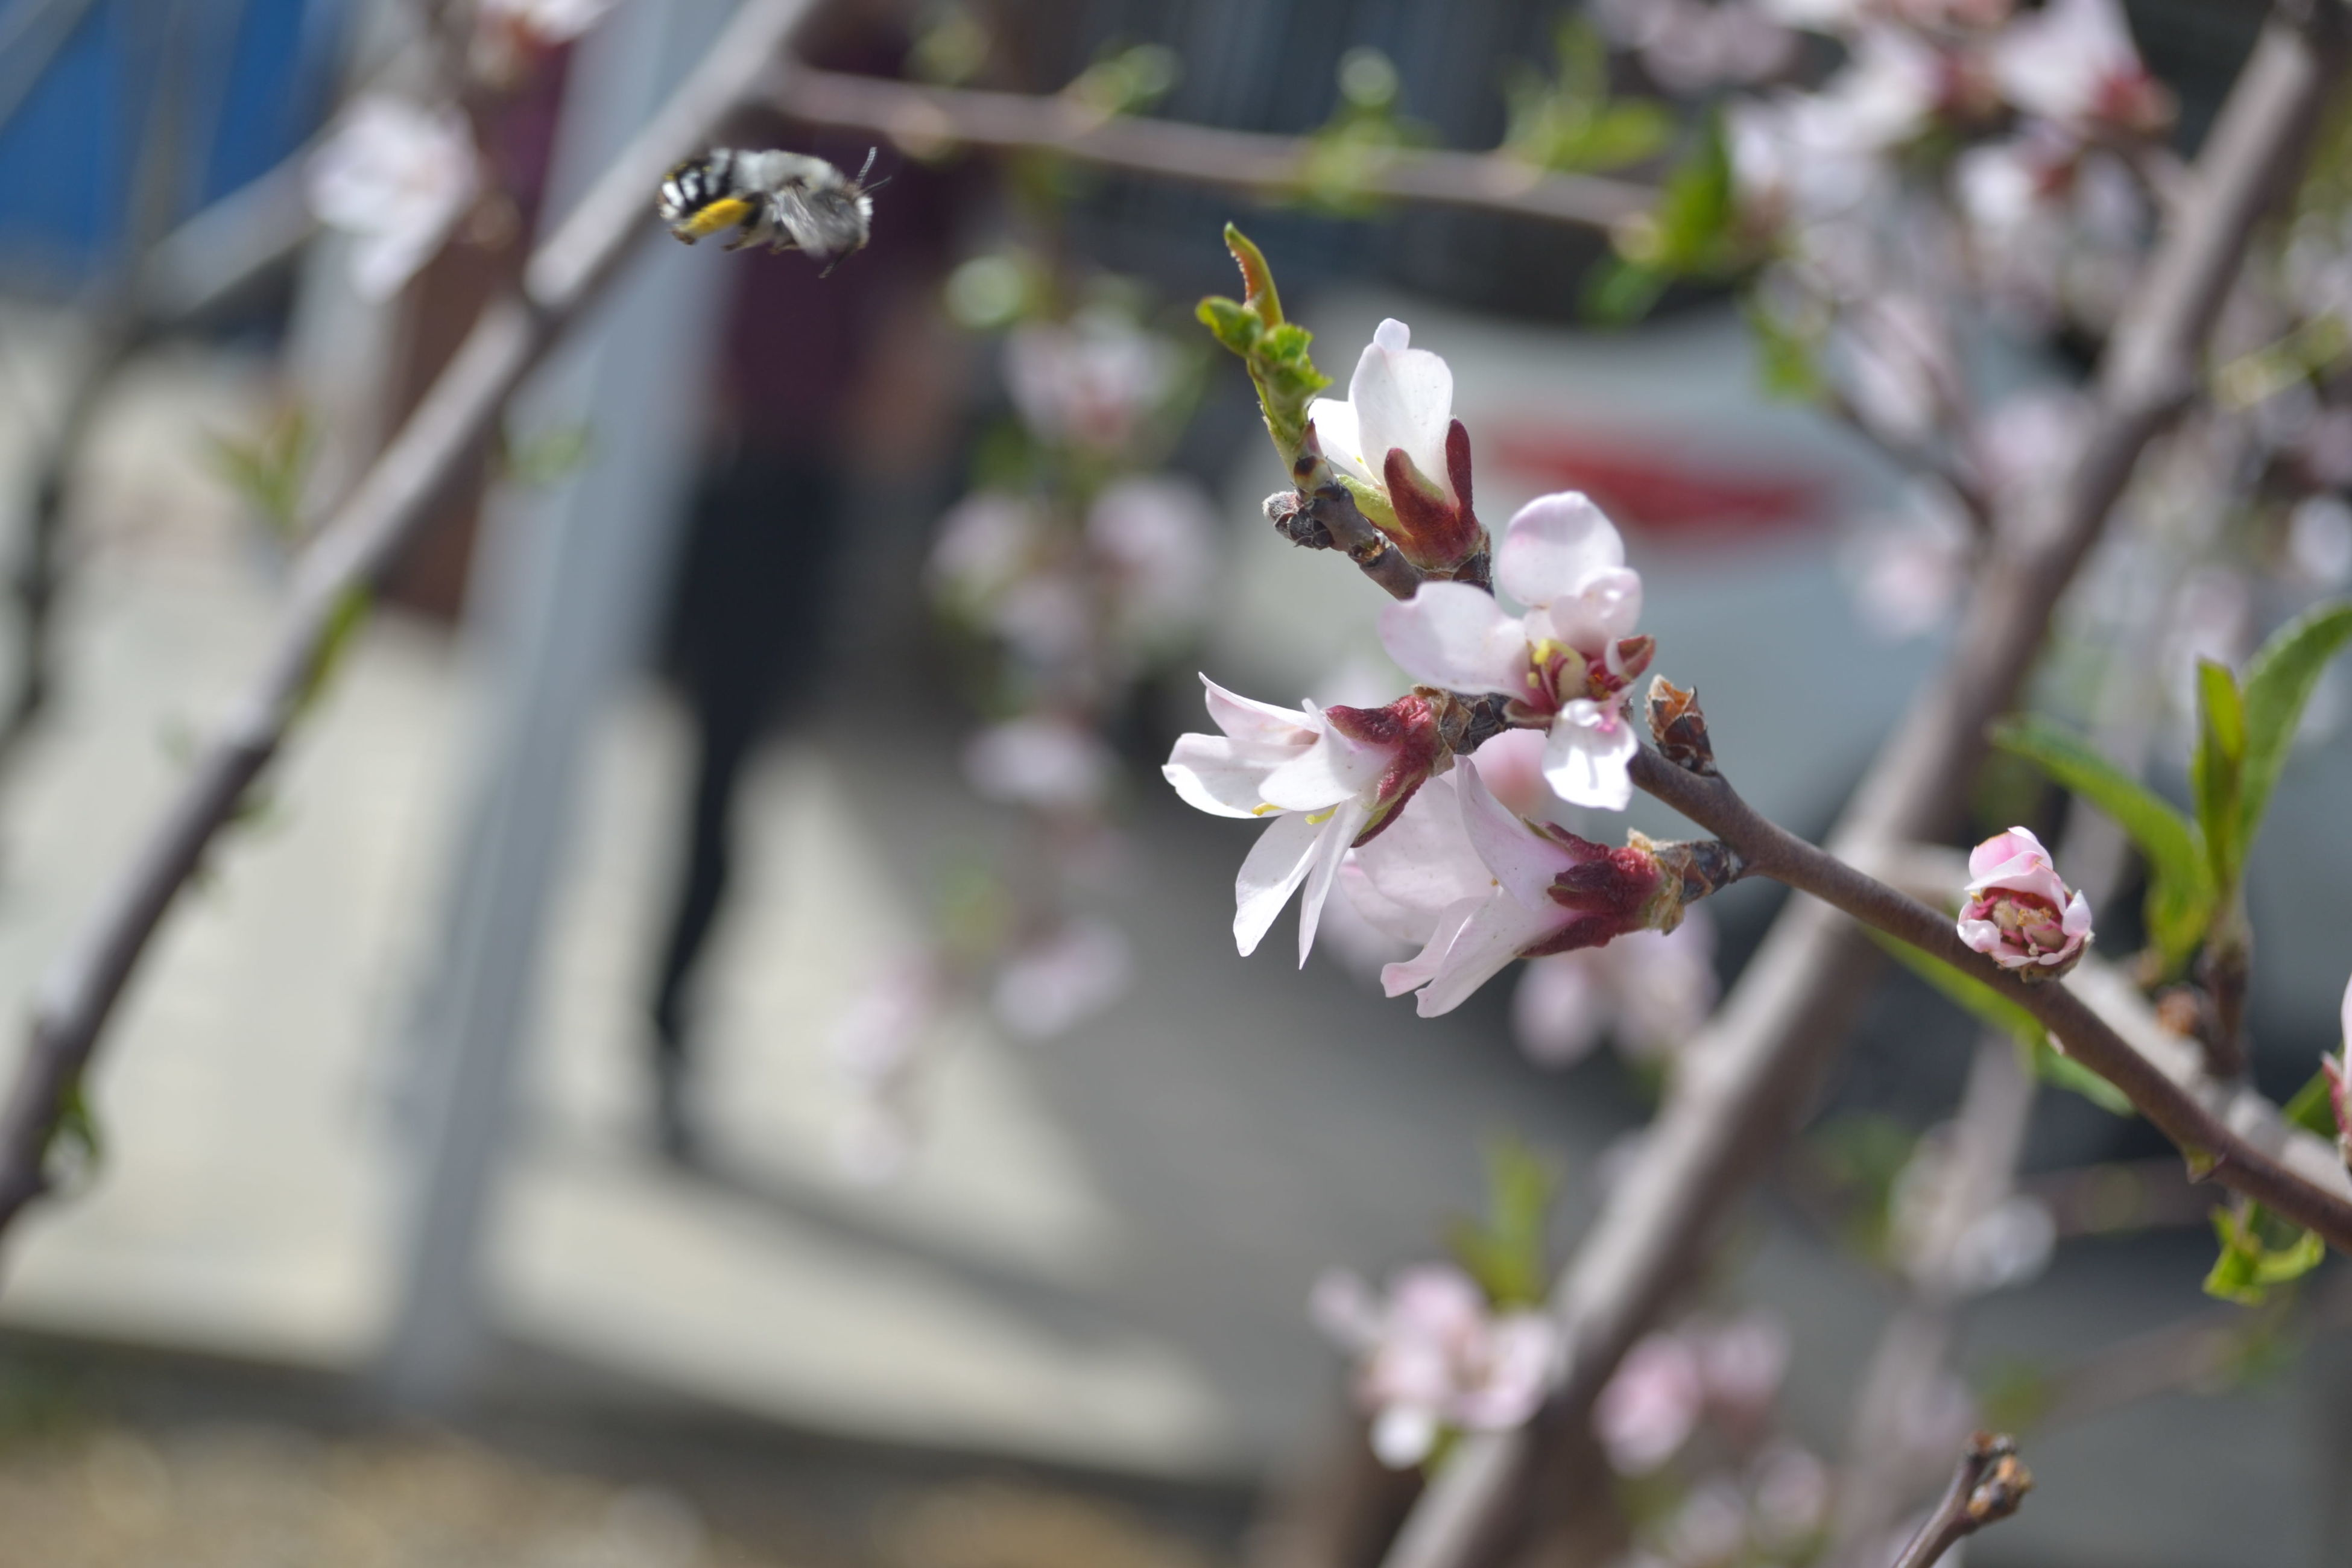 flower, freshness, fragility, growth, beauty in nature, cherry blossom, focus on foreground, branch, petal, nature, tree, blossom, close-up, white color, cherry tree, blooming, in bloom, twig, flower head, springtime